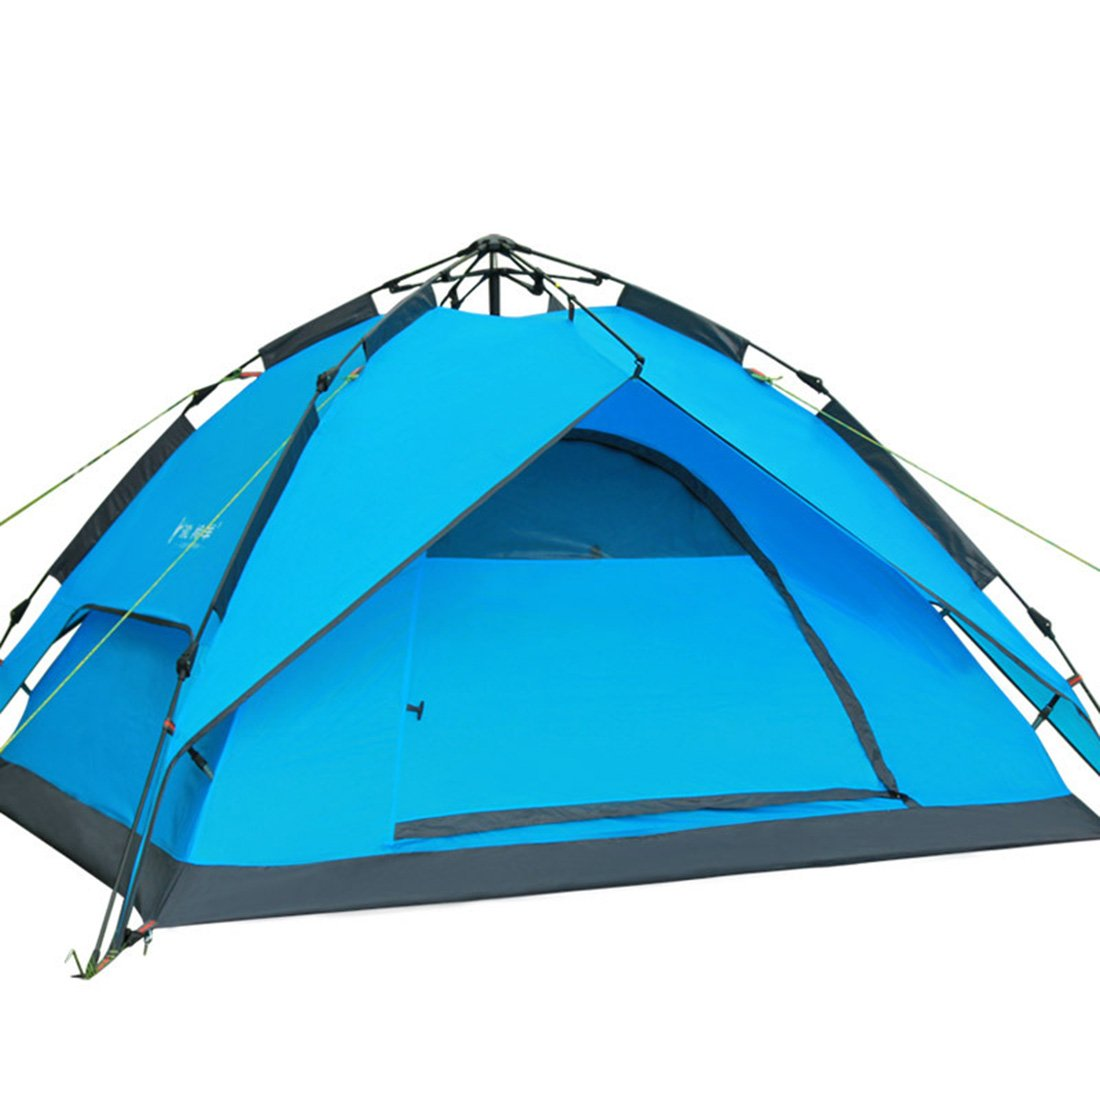 CHYIR Outdoor Camping Hydraulic Pressure Tent Rain Proof Double Layers Tent Blue